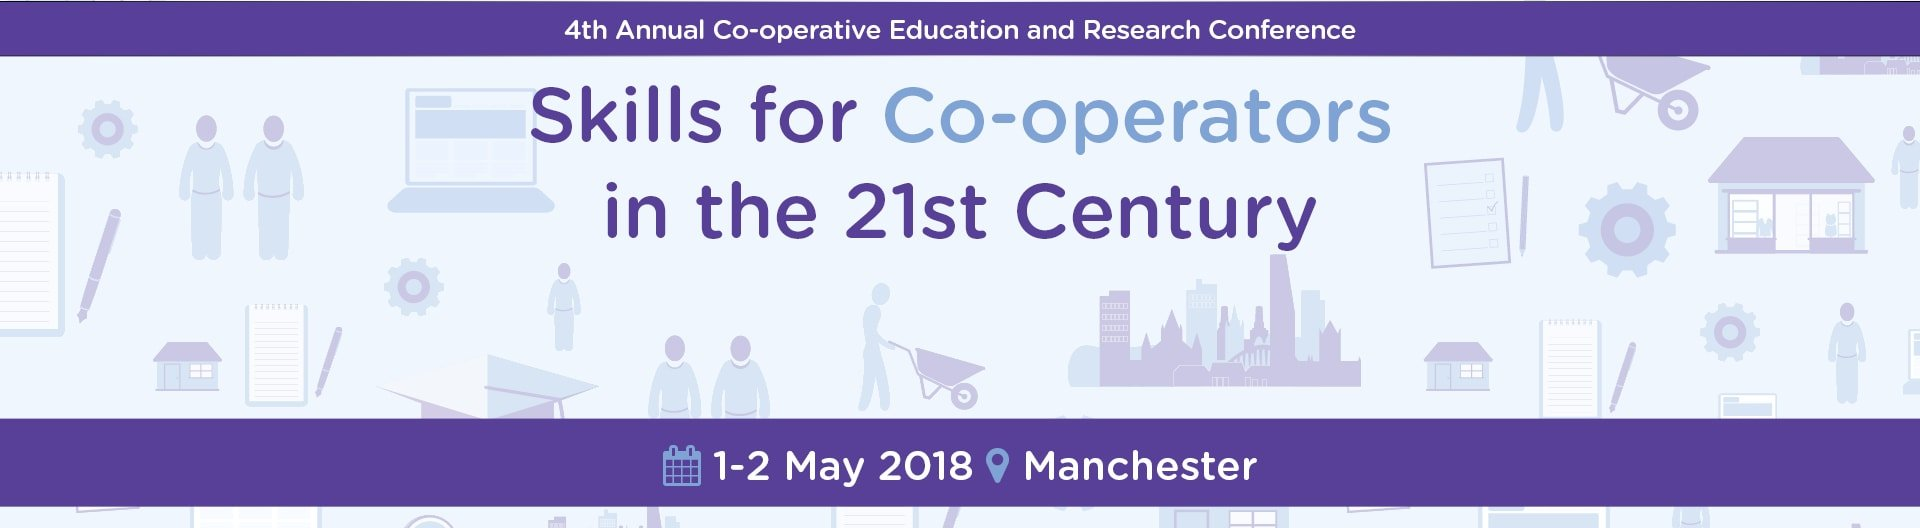 conference 1st-2nd May 2018